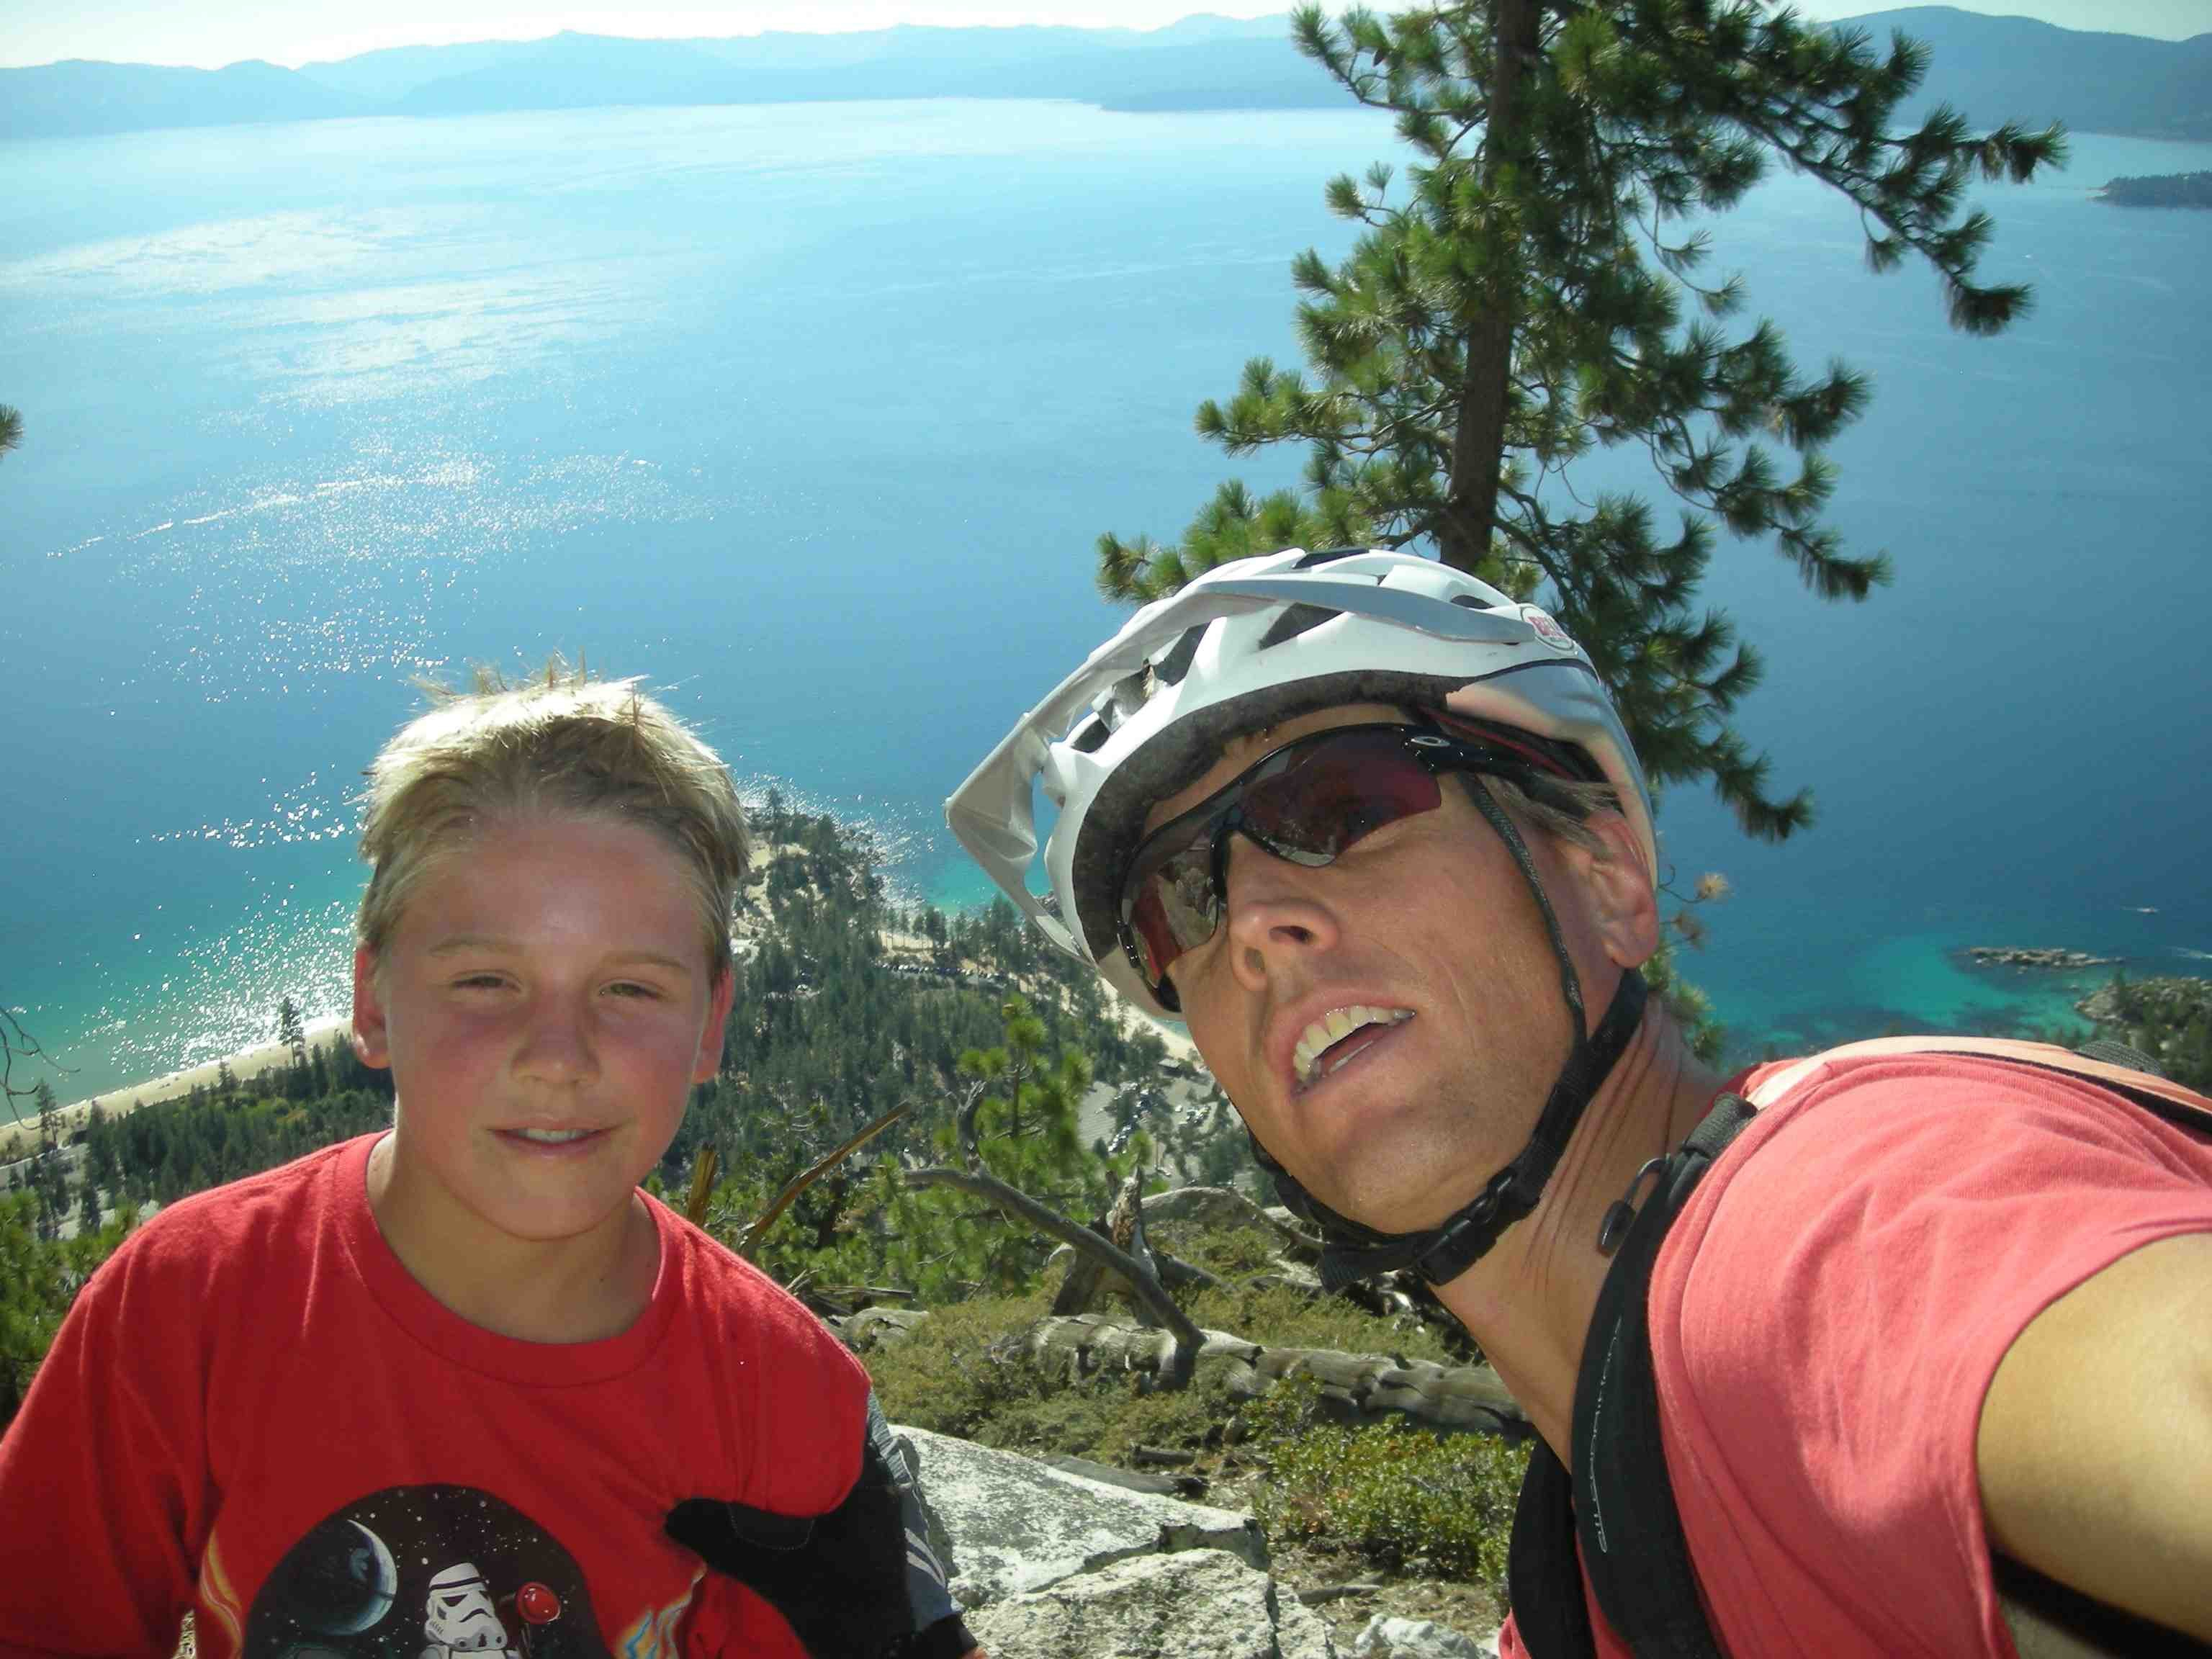 Cooper and his dad enjoying the Flume Trail at Lake Tahoe